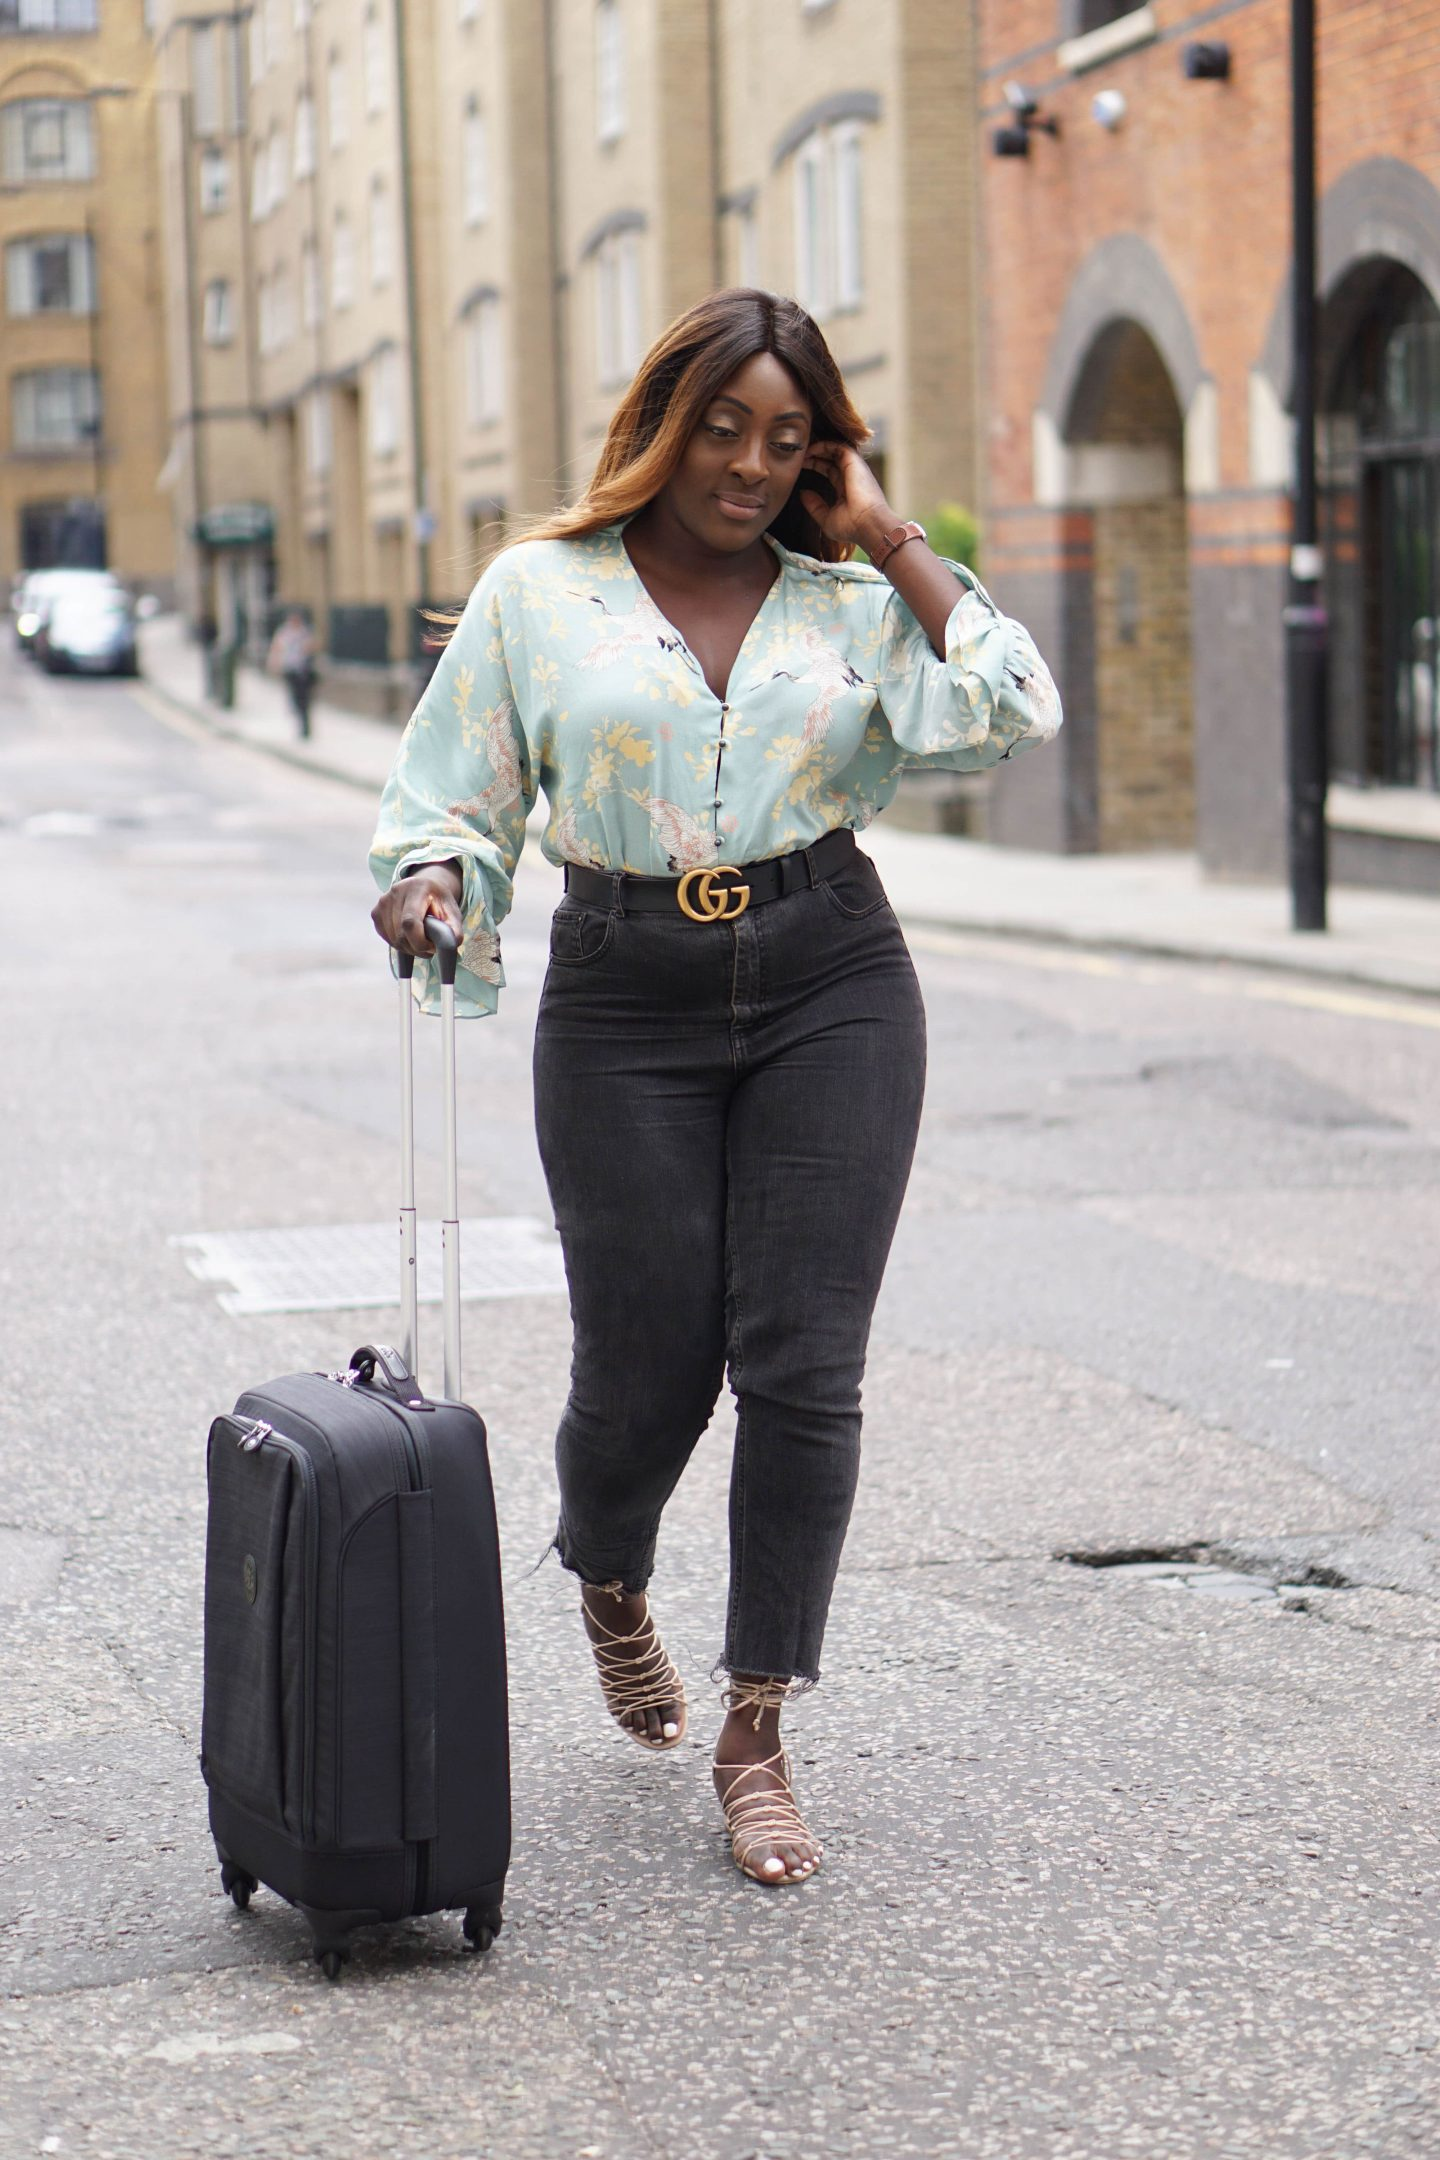 Business Travel Essentials with Kipling 6 -SUPER HYBRID S Cabin Size Wheeled Luggage - Gucci Belt - Zara Blouse - Style and the Sass